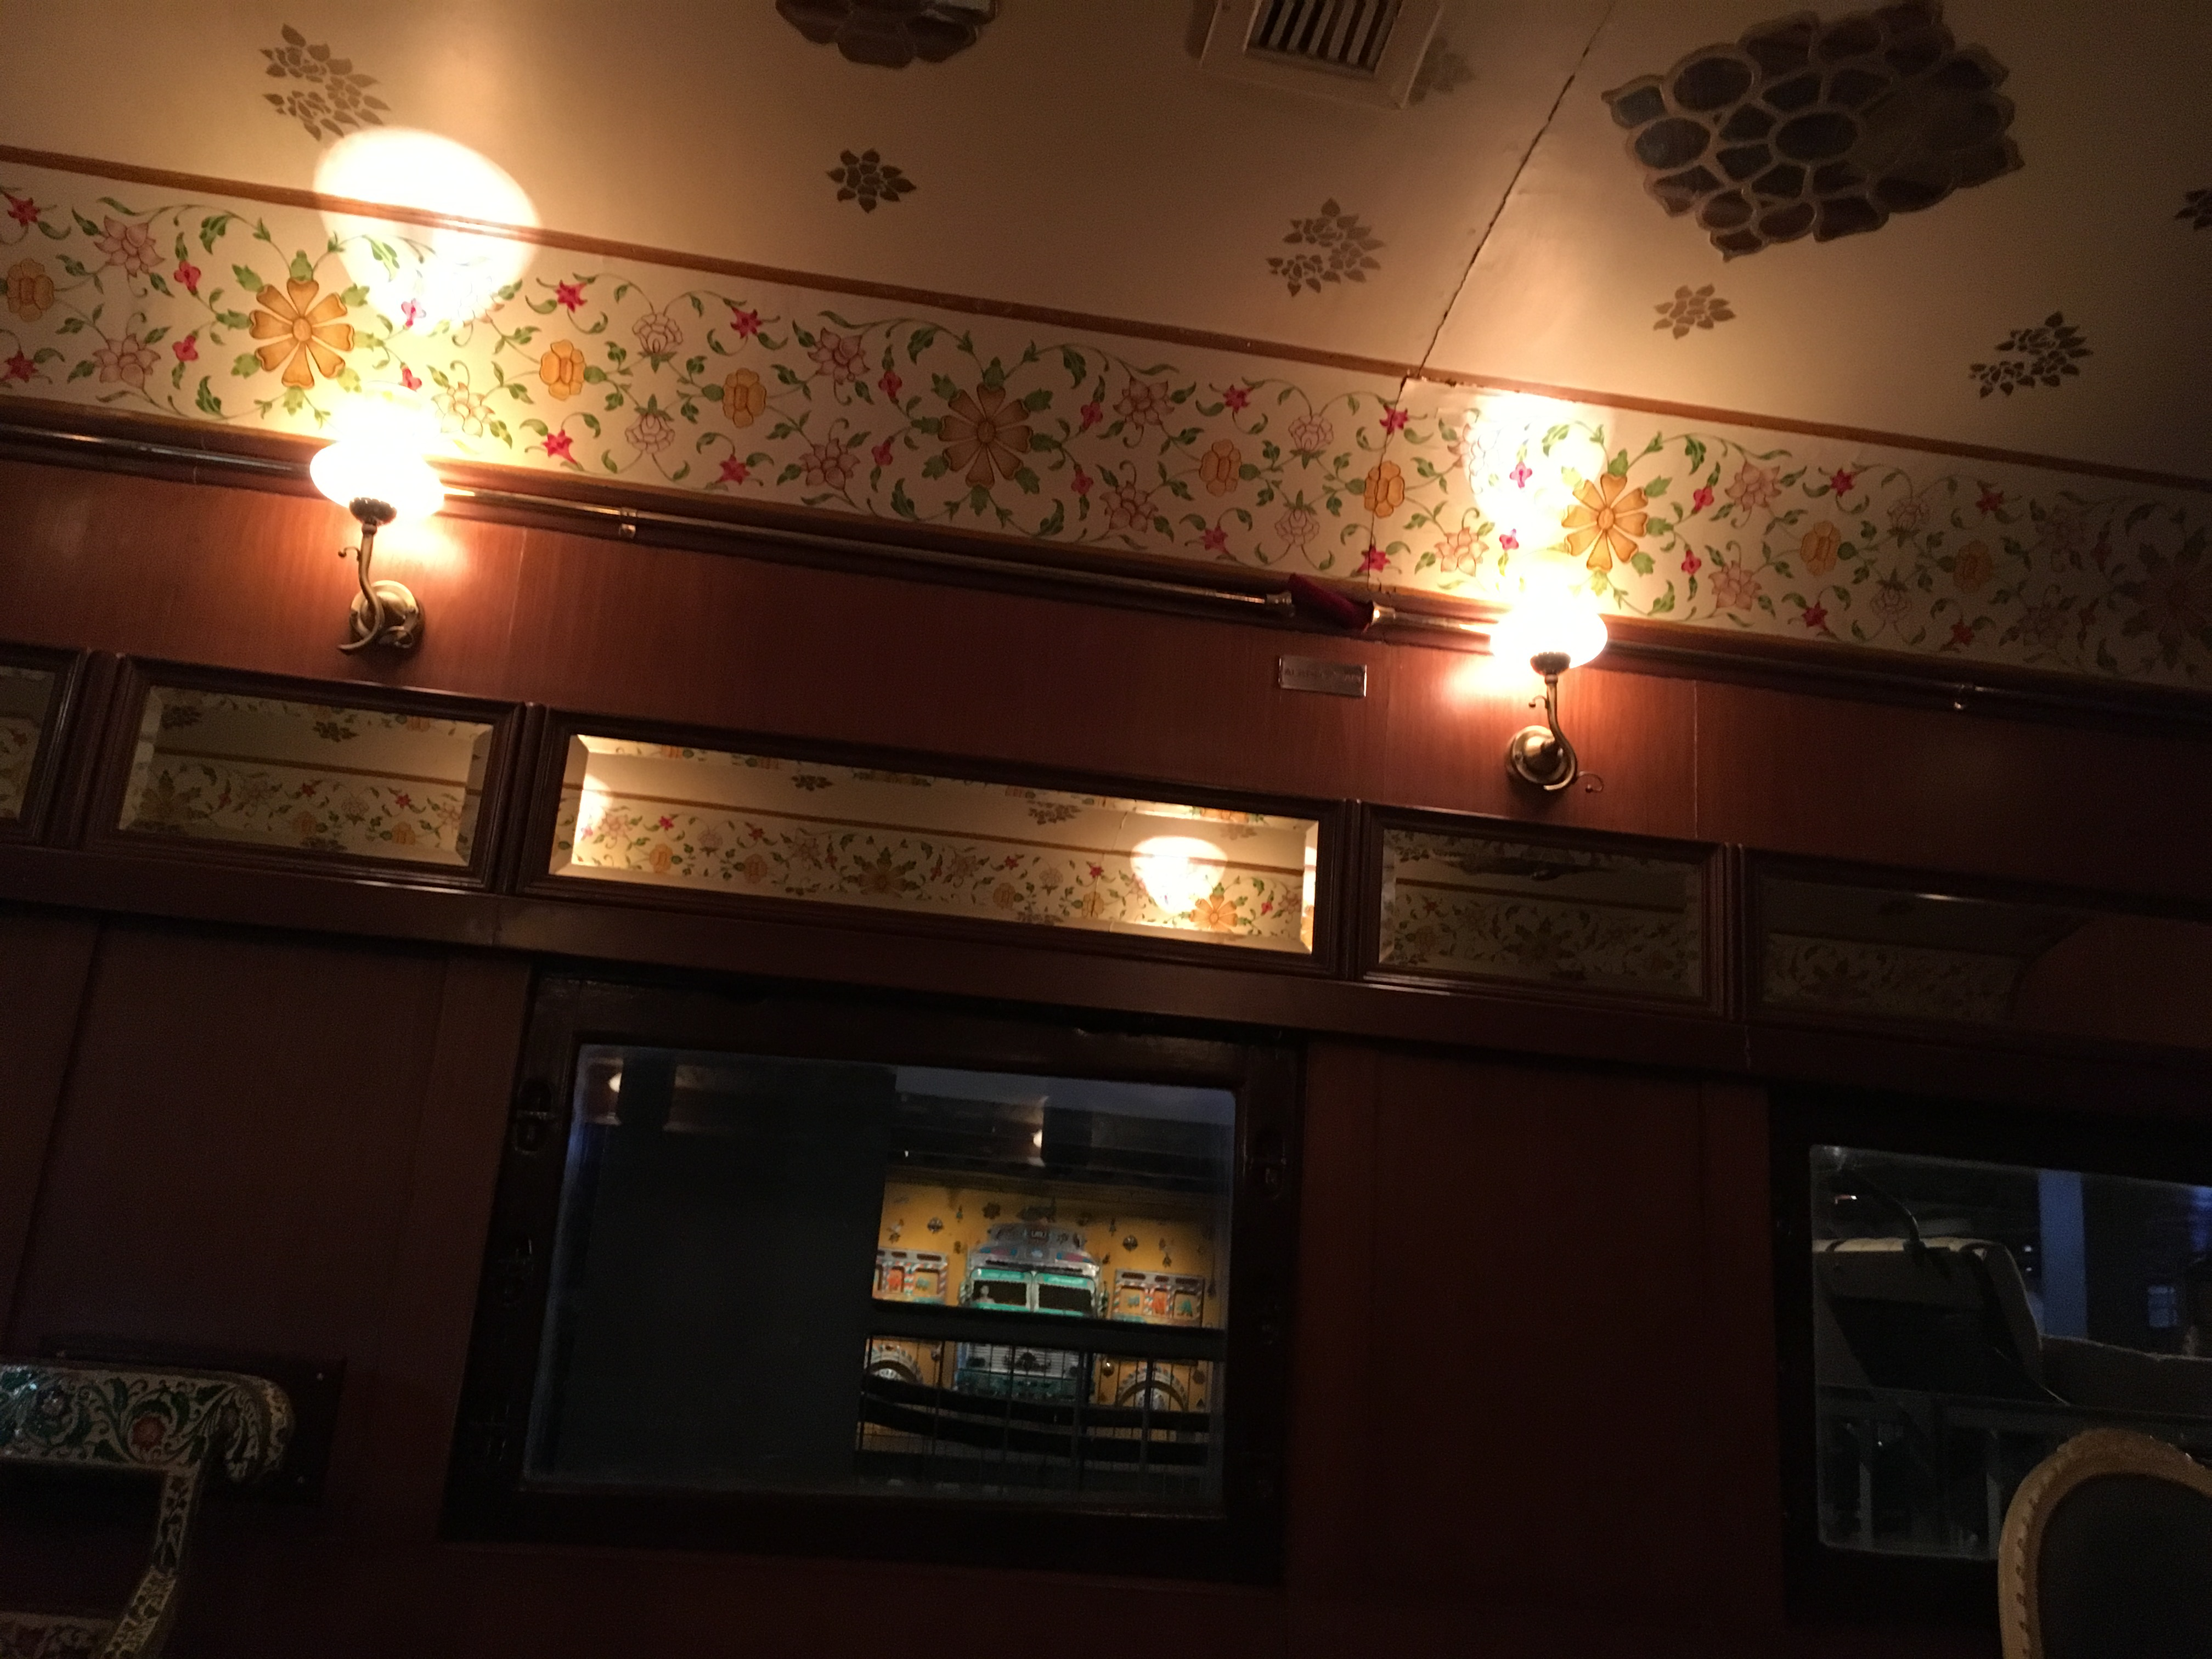 Decorated ceiling with two show lights and intricate wall border